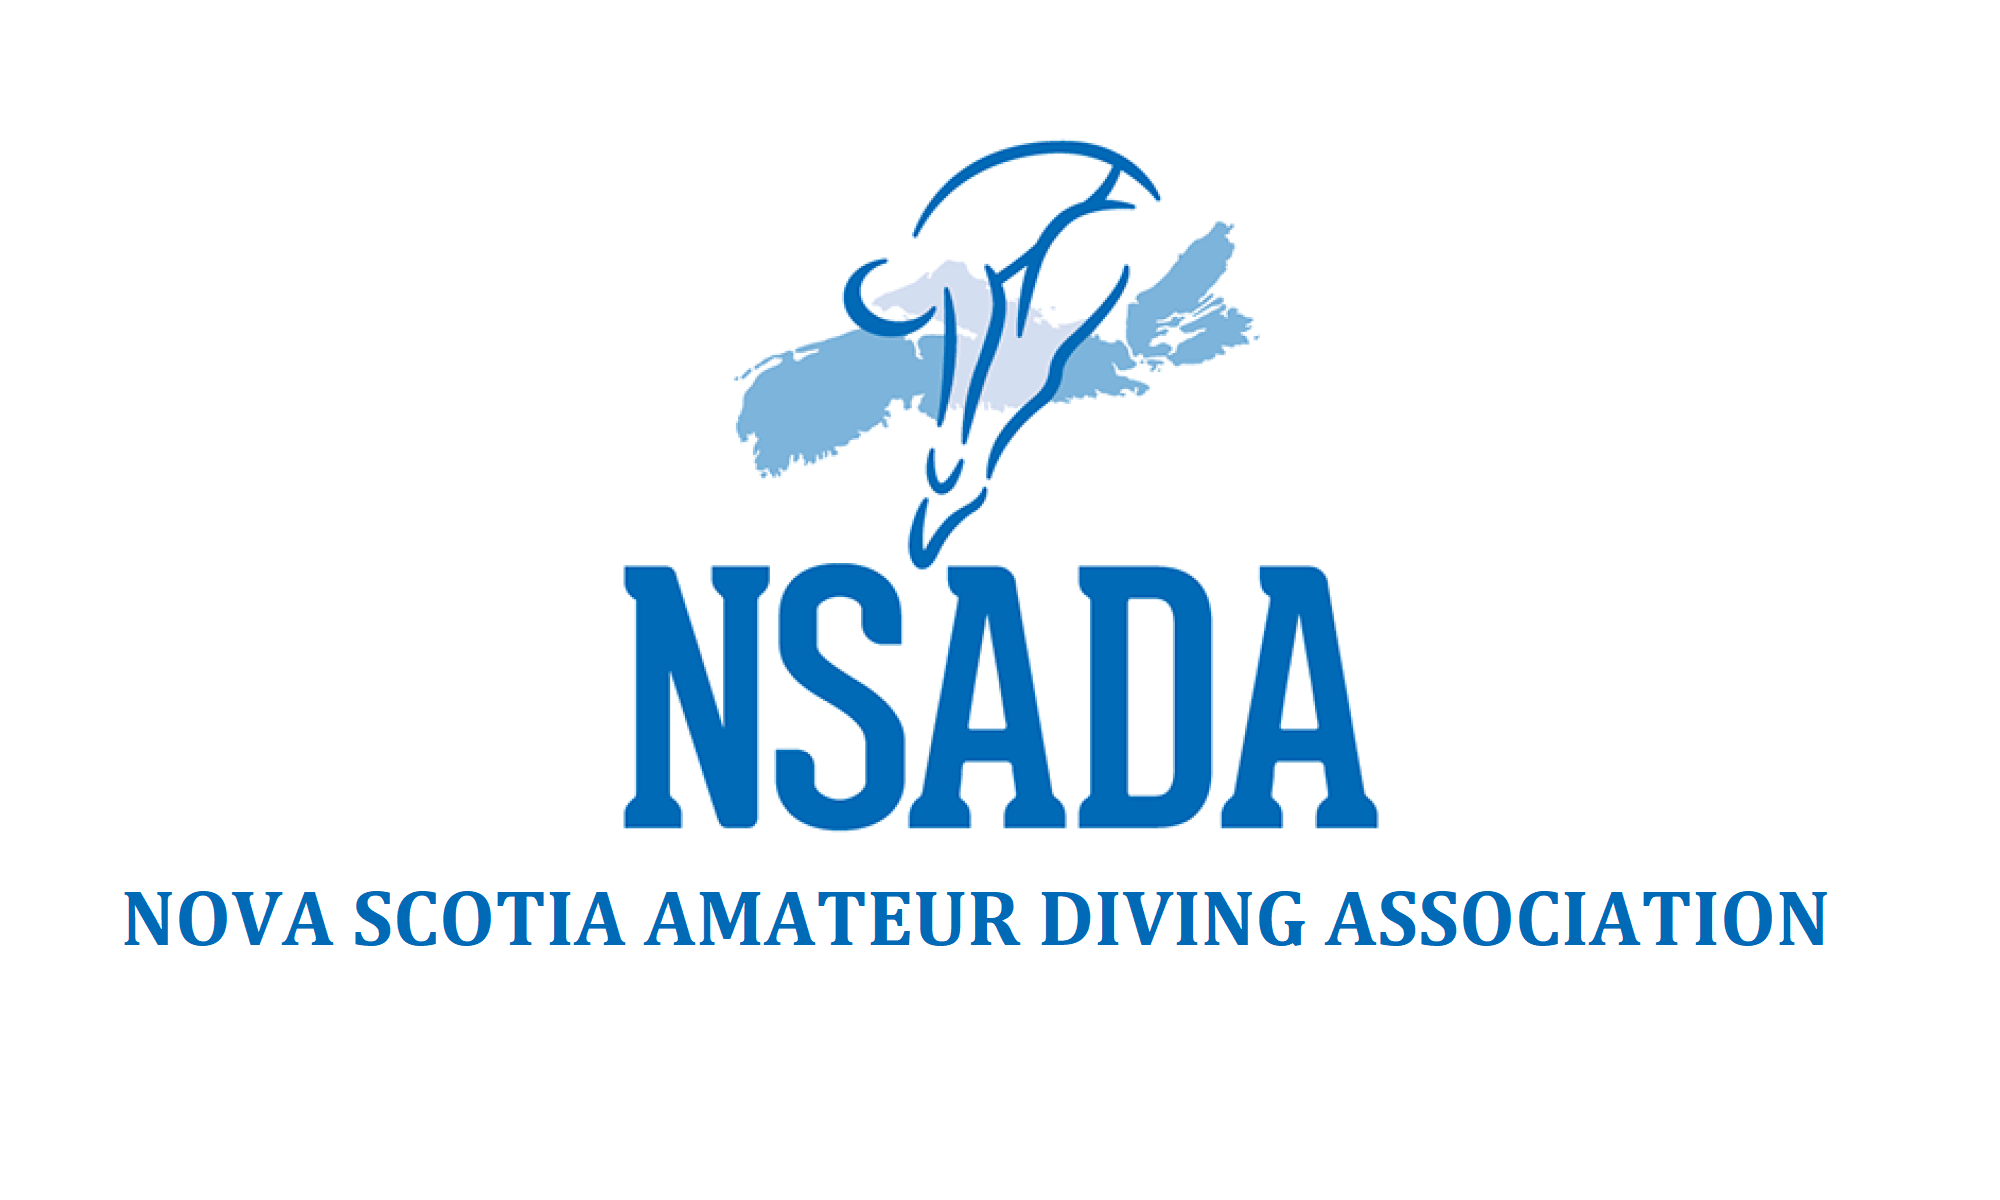 Nova Scotia Amateur Diving Association